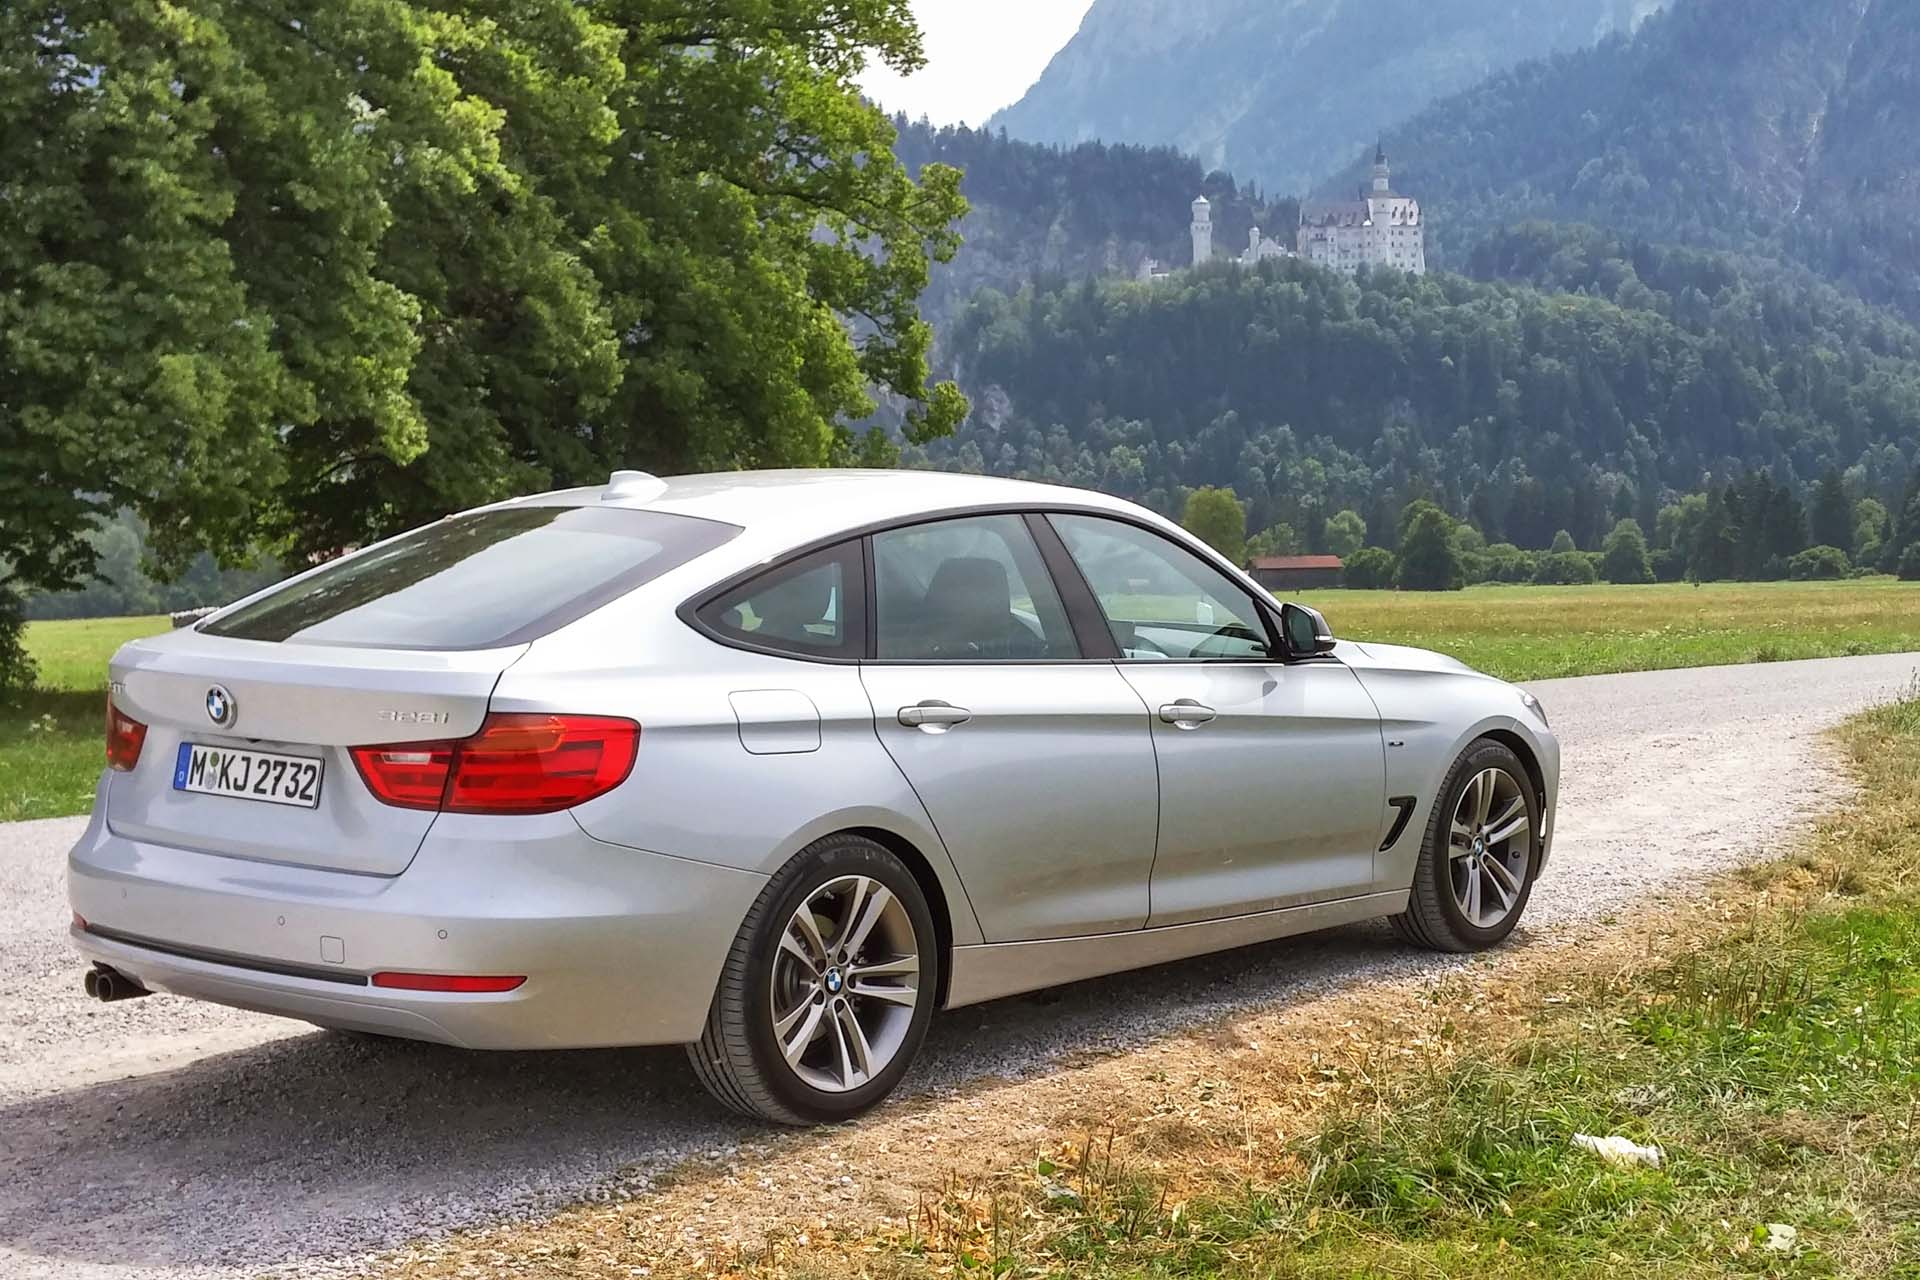 The 328i with Neuschwanstein castle in the background.